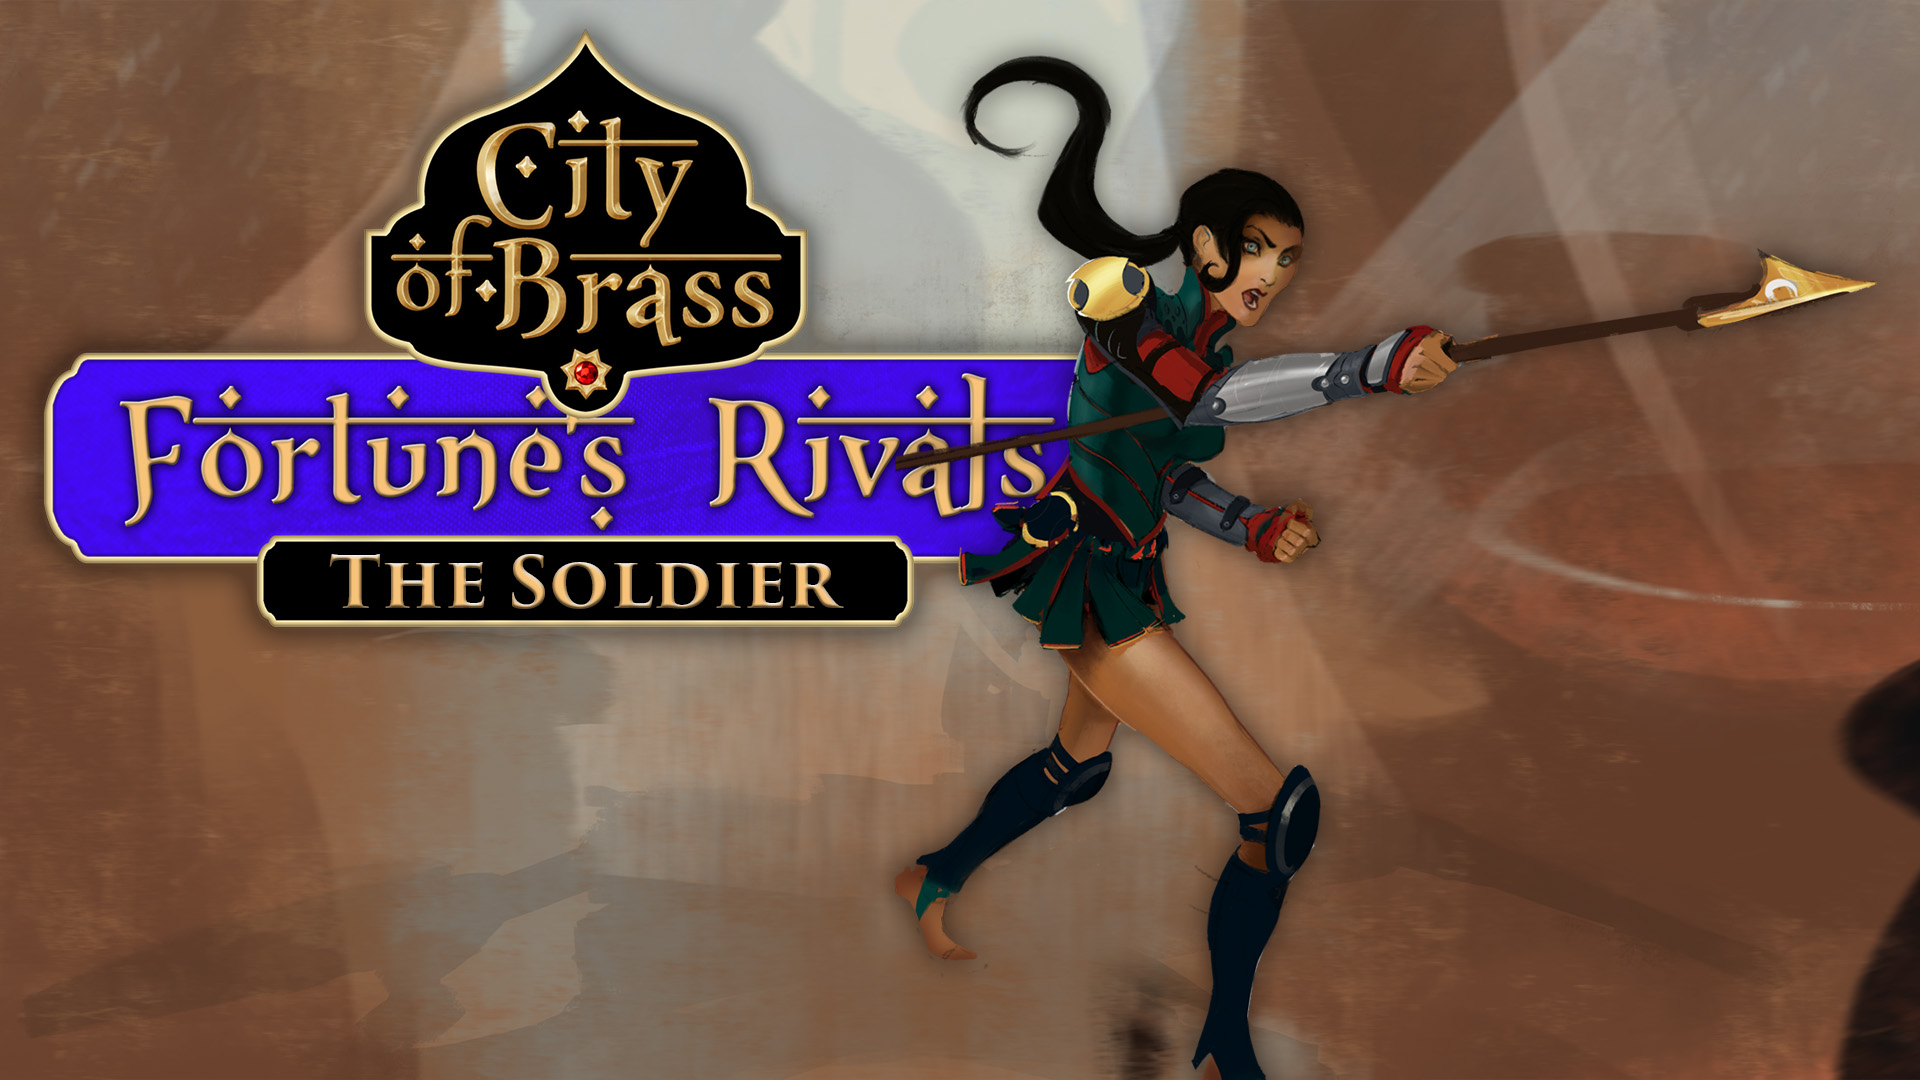 city of brass, fortune's rivals, fortunes rivals, city of brass fortunes rivals, city of brass update, fortunes rivals update, city of brass new characters, uppercut games, city of brass news, city of brass uppercut games, gigamax games, video game news, gaming news